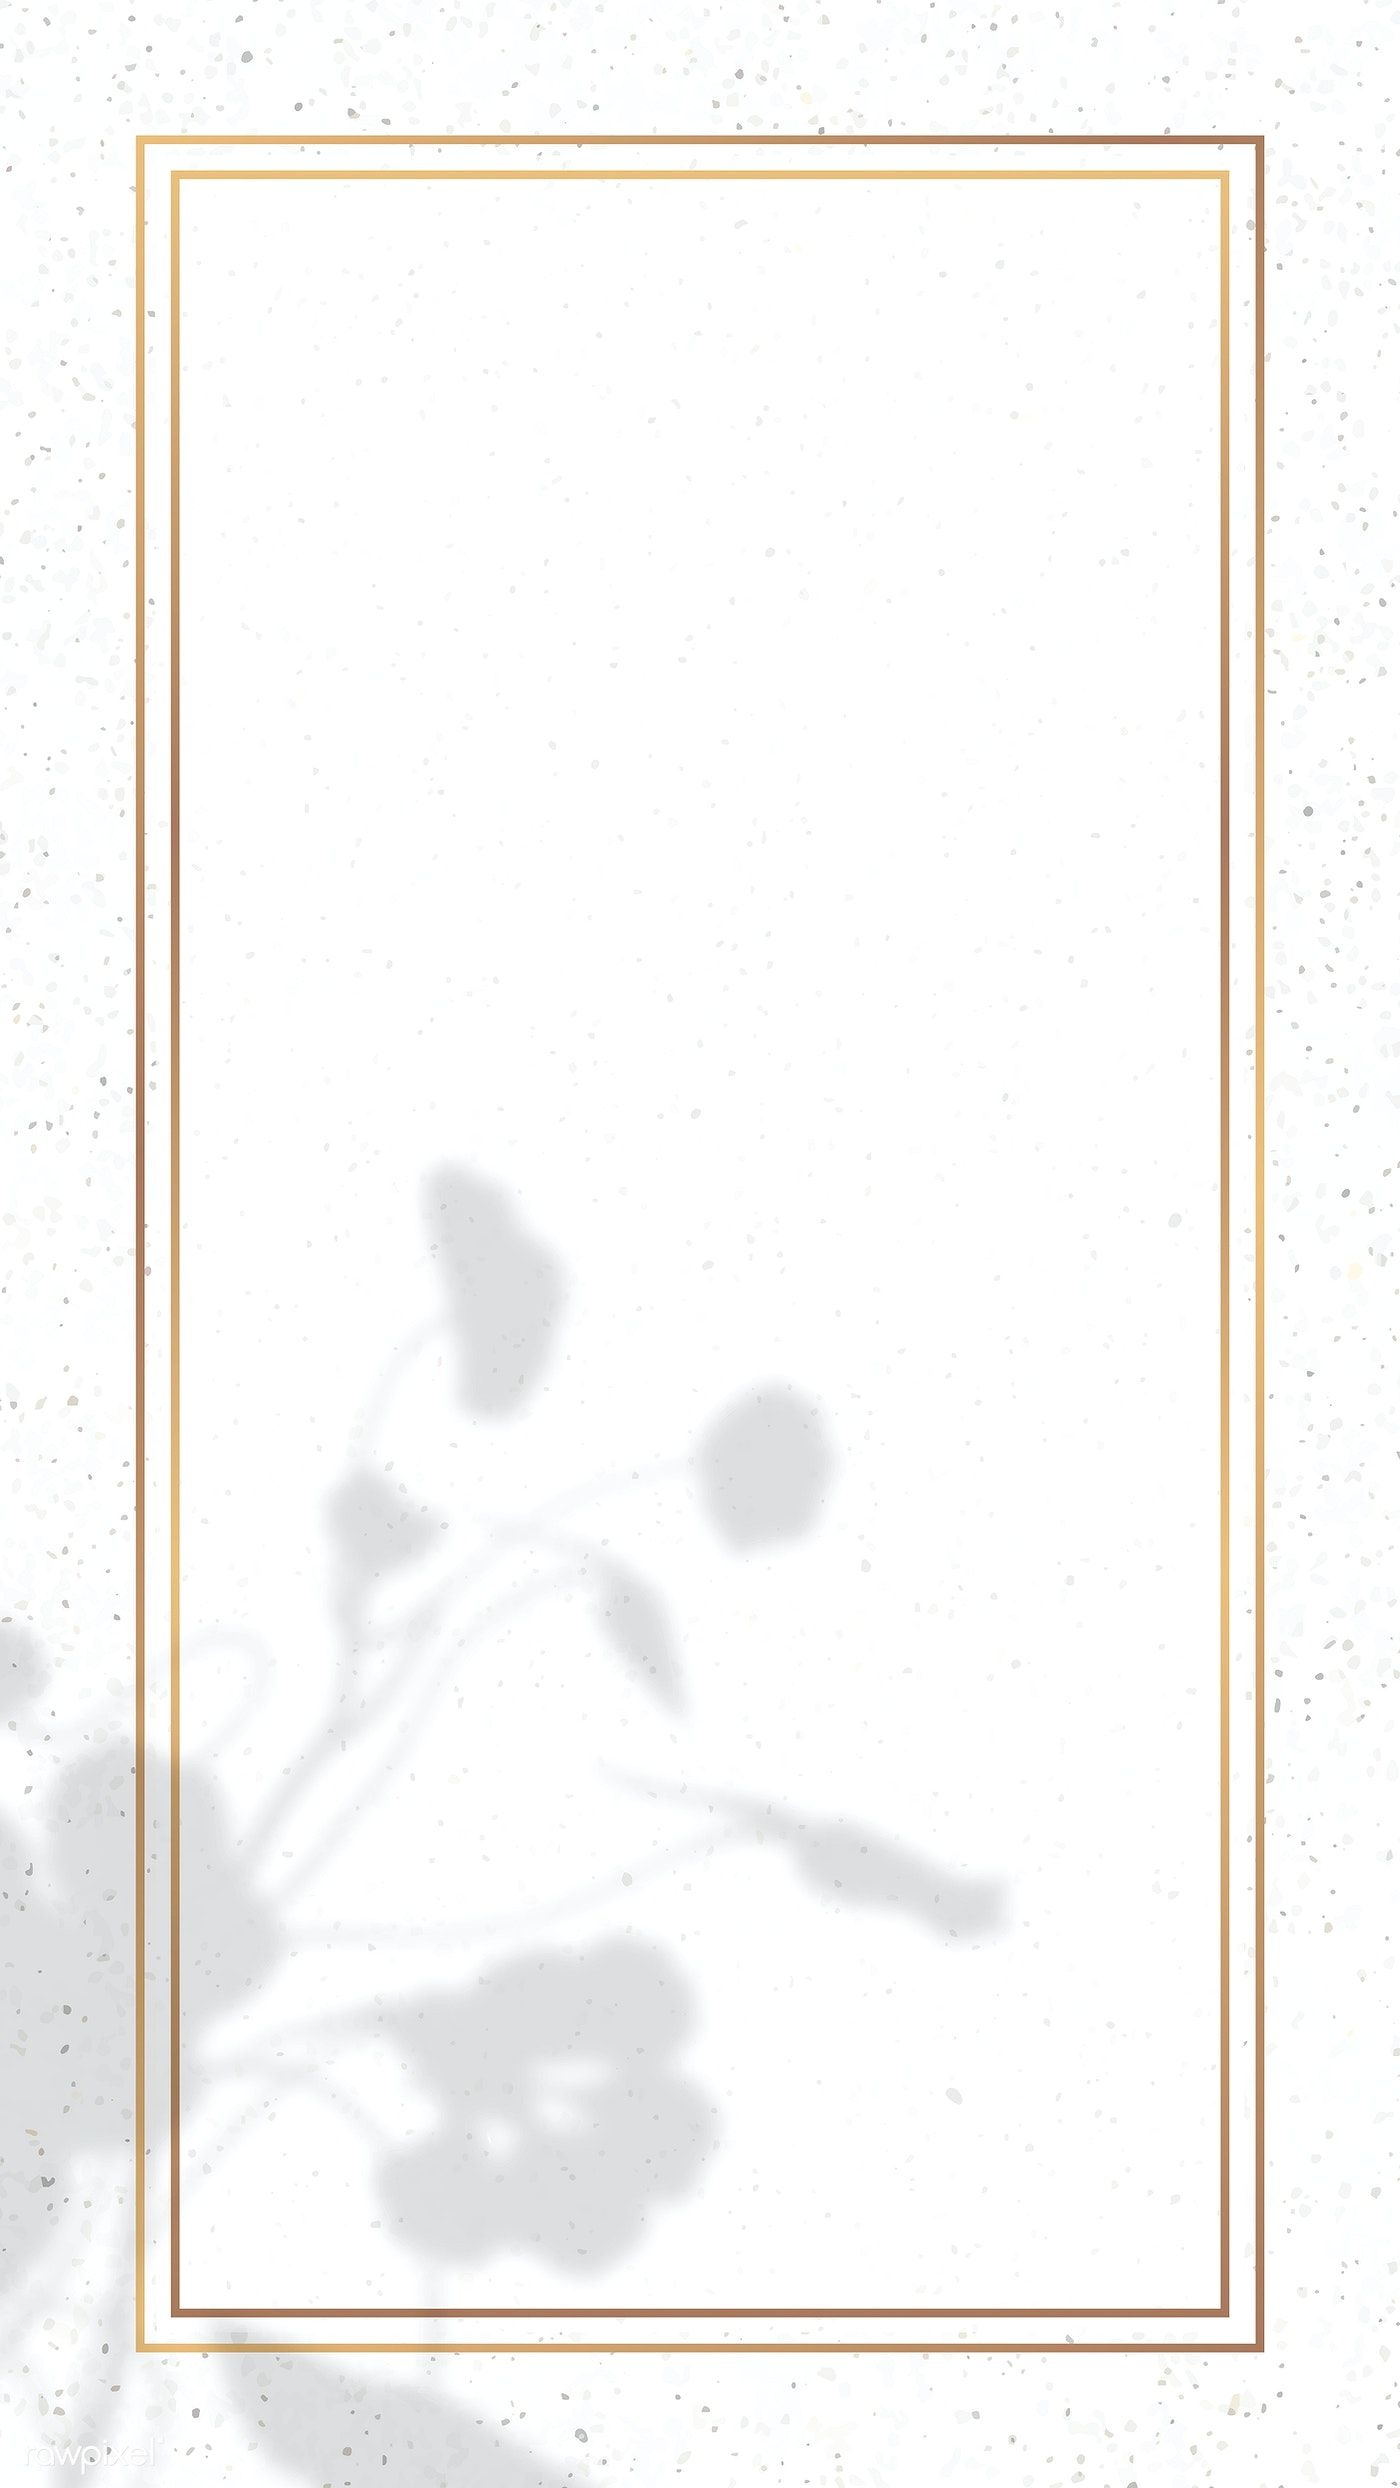 Download Premium Vector Of Rectangle Gold Frame With Floral Shadow On Gold Frame Vector Background Pattern Phone Wallpaper Design